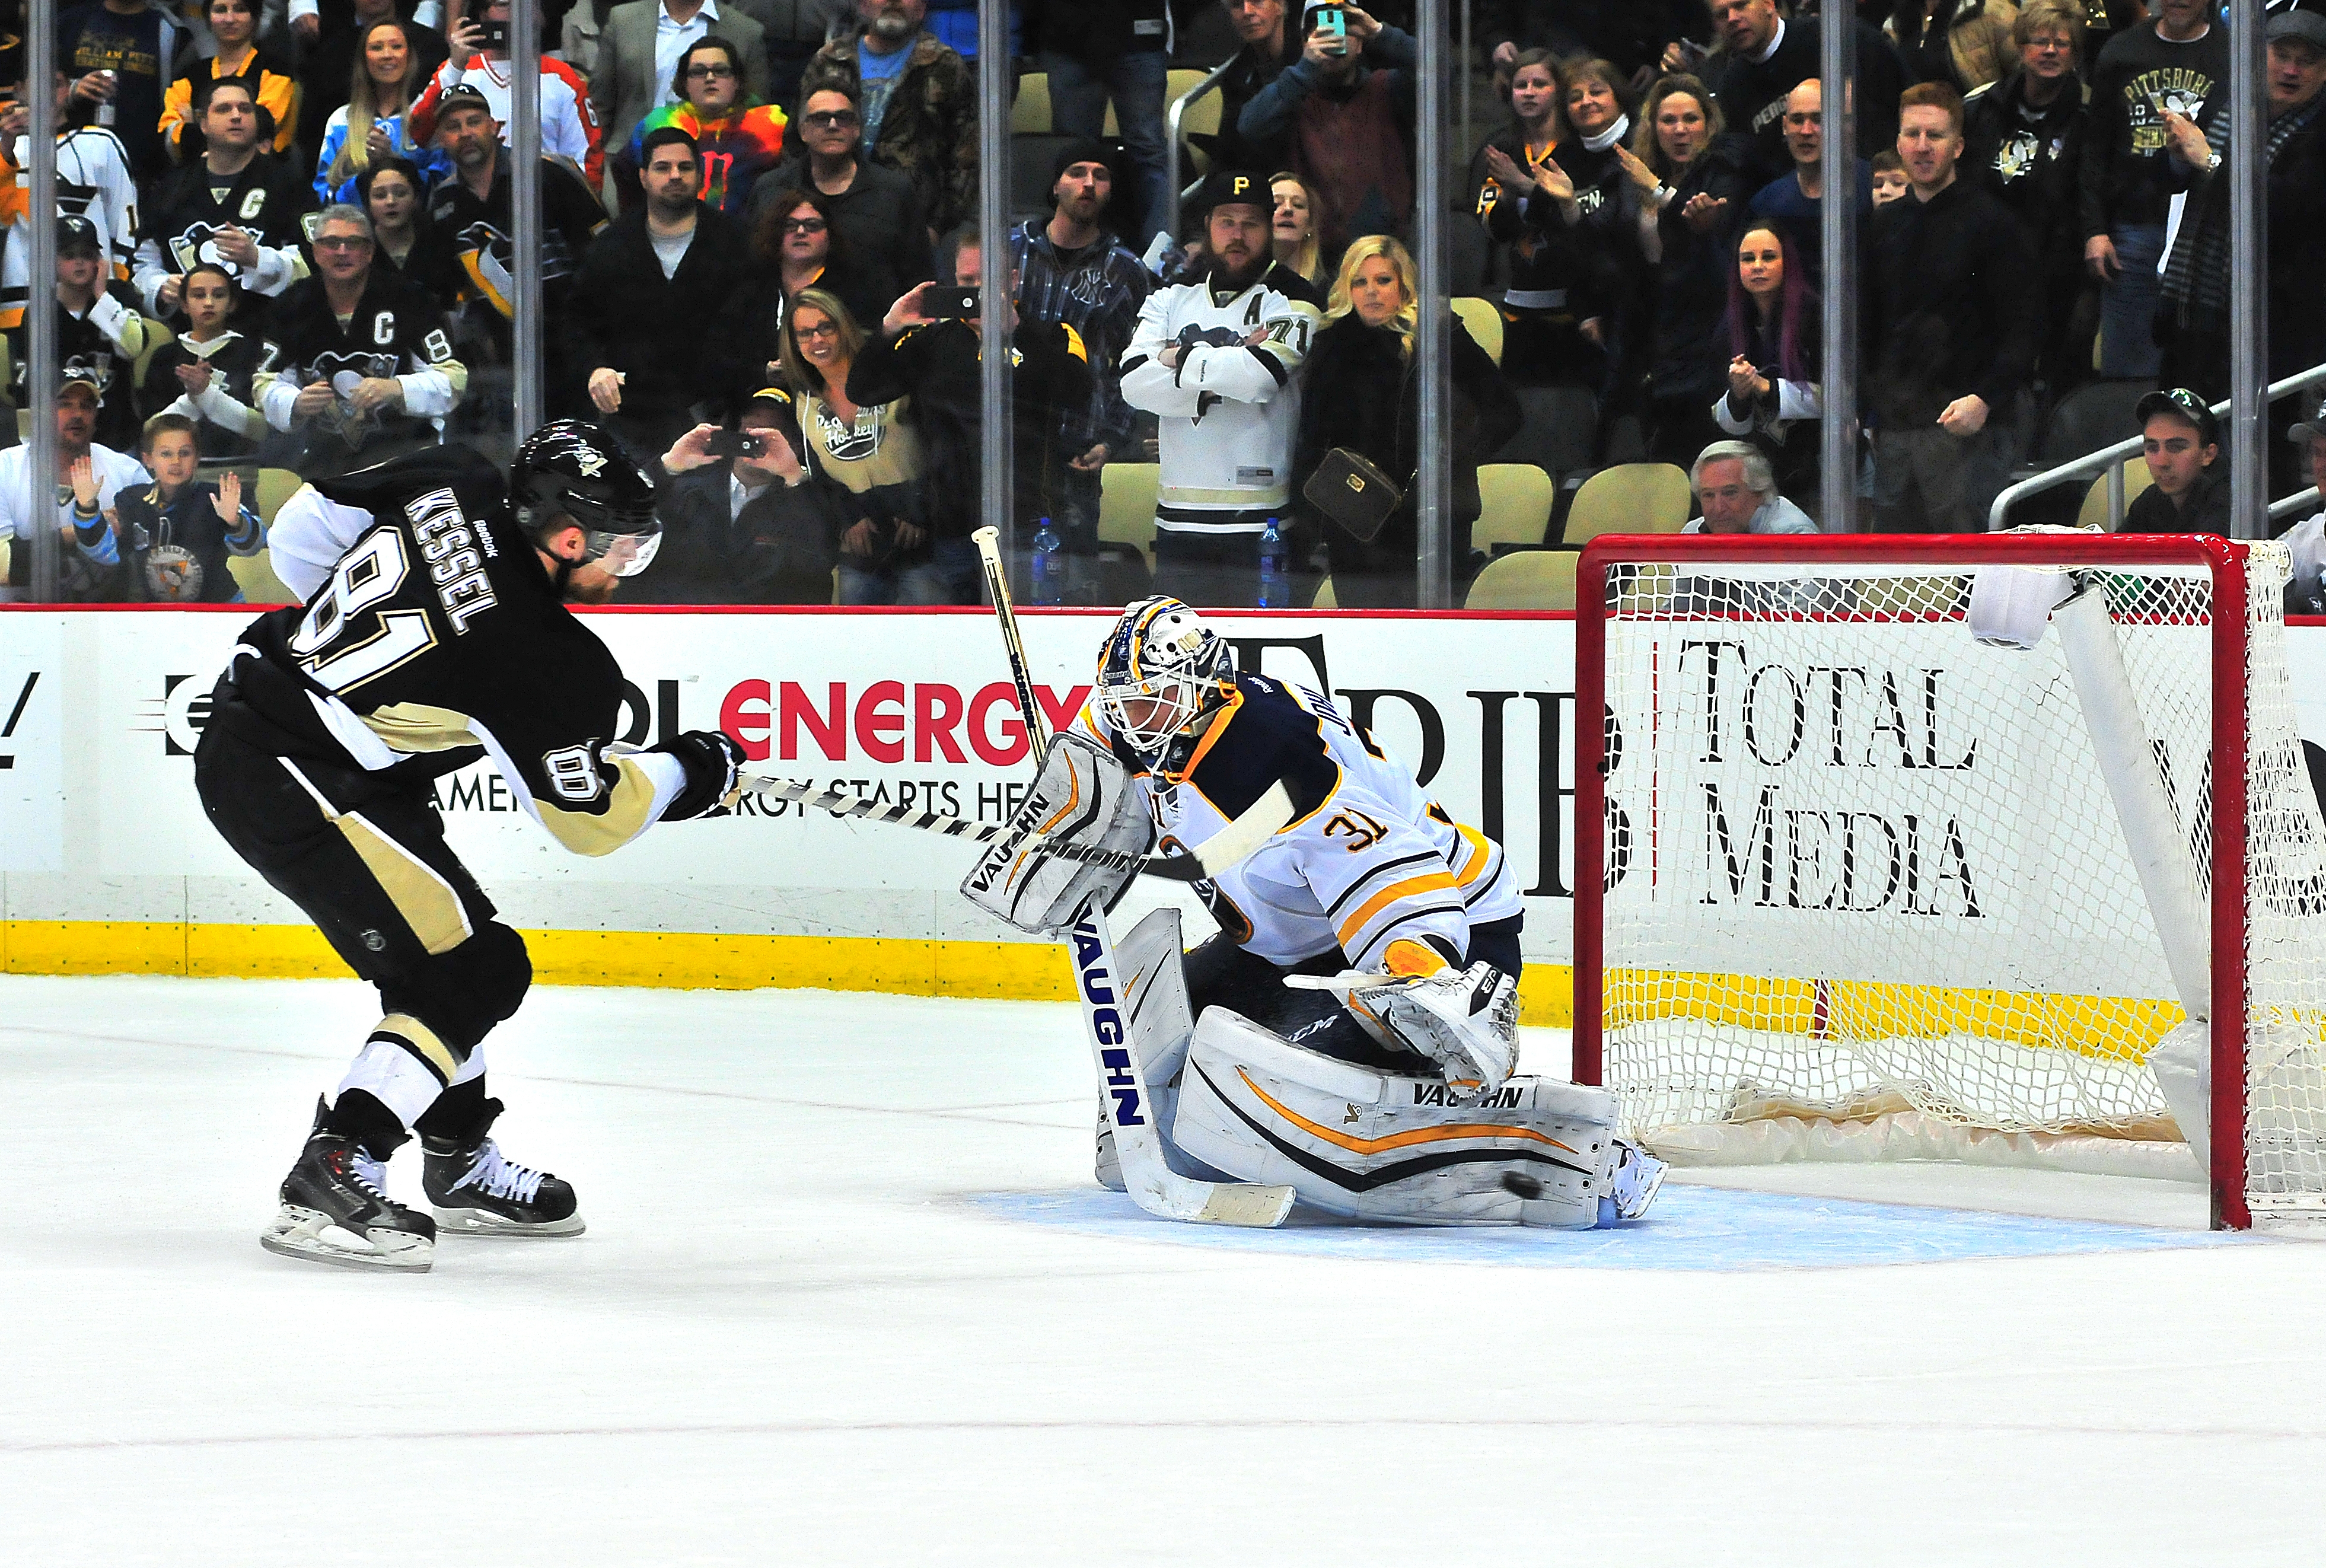 Phil Kessel of the Pittsburgh Penguins gets the game-winning goal in a shootout.